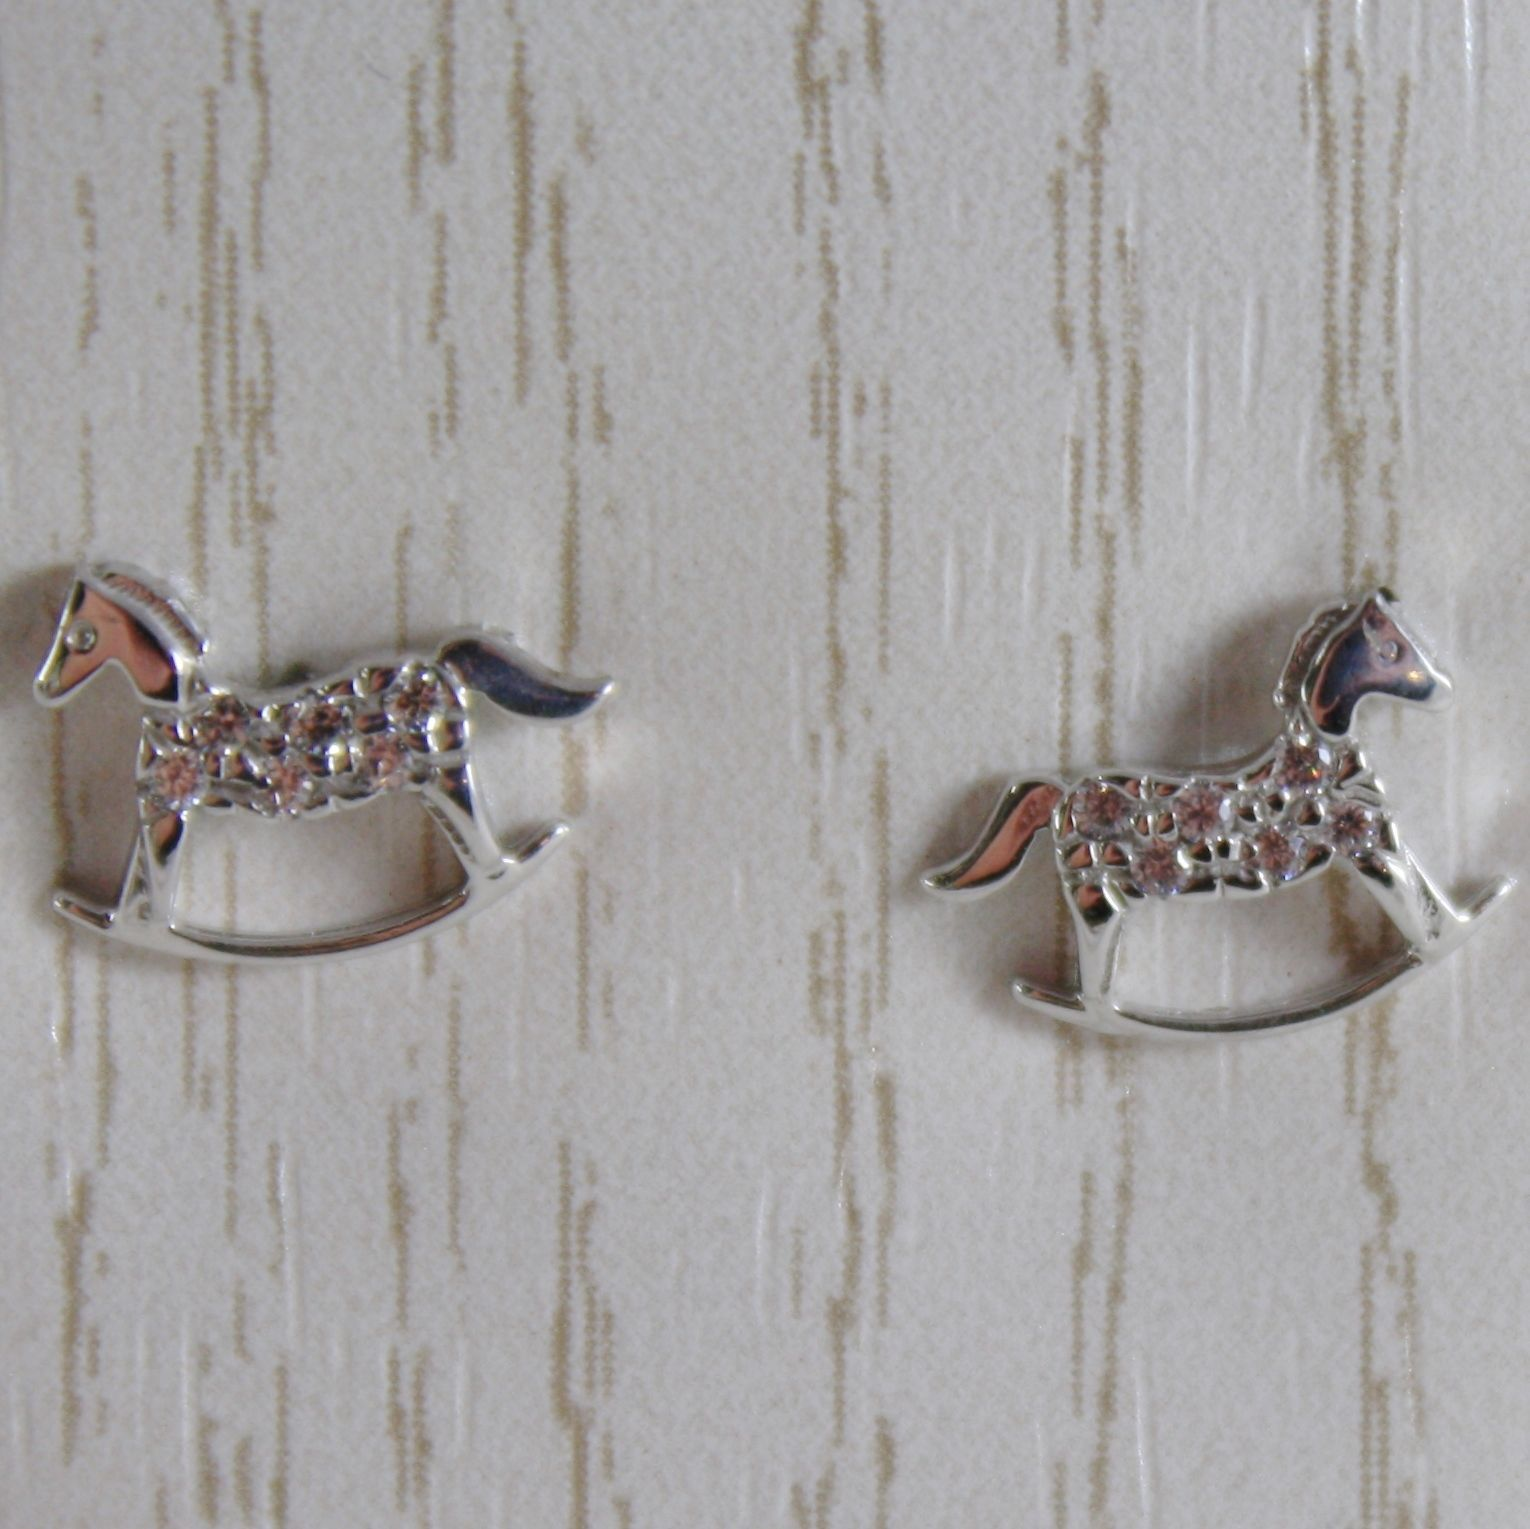 18K WHITE GOLD EARRINGS MINI ROCKING HORSE ZIRCONIA FOR KIDS CHILD MADE IN ITALY